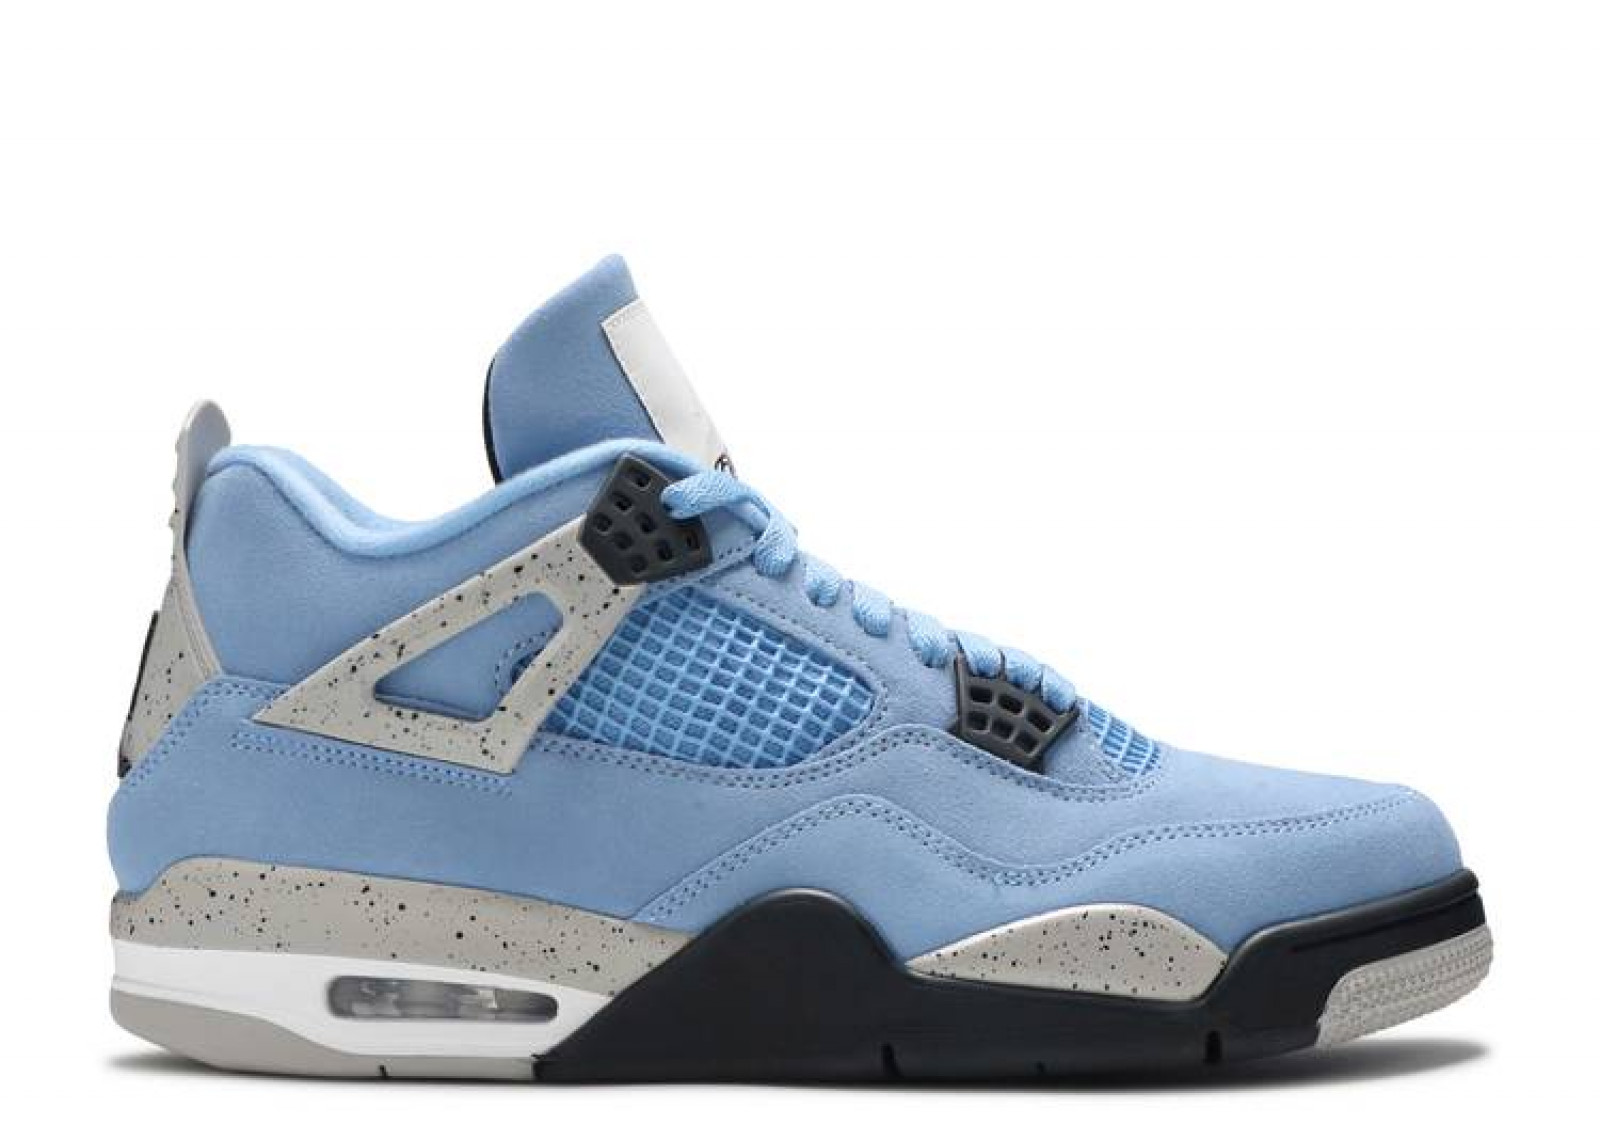 AIR JORDAN 4 RETRO UNIVERSITY BLUE image 1